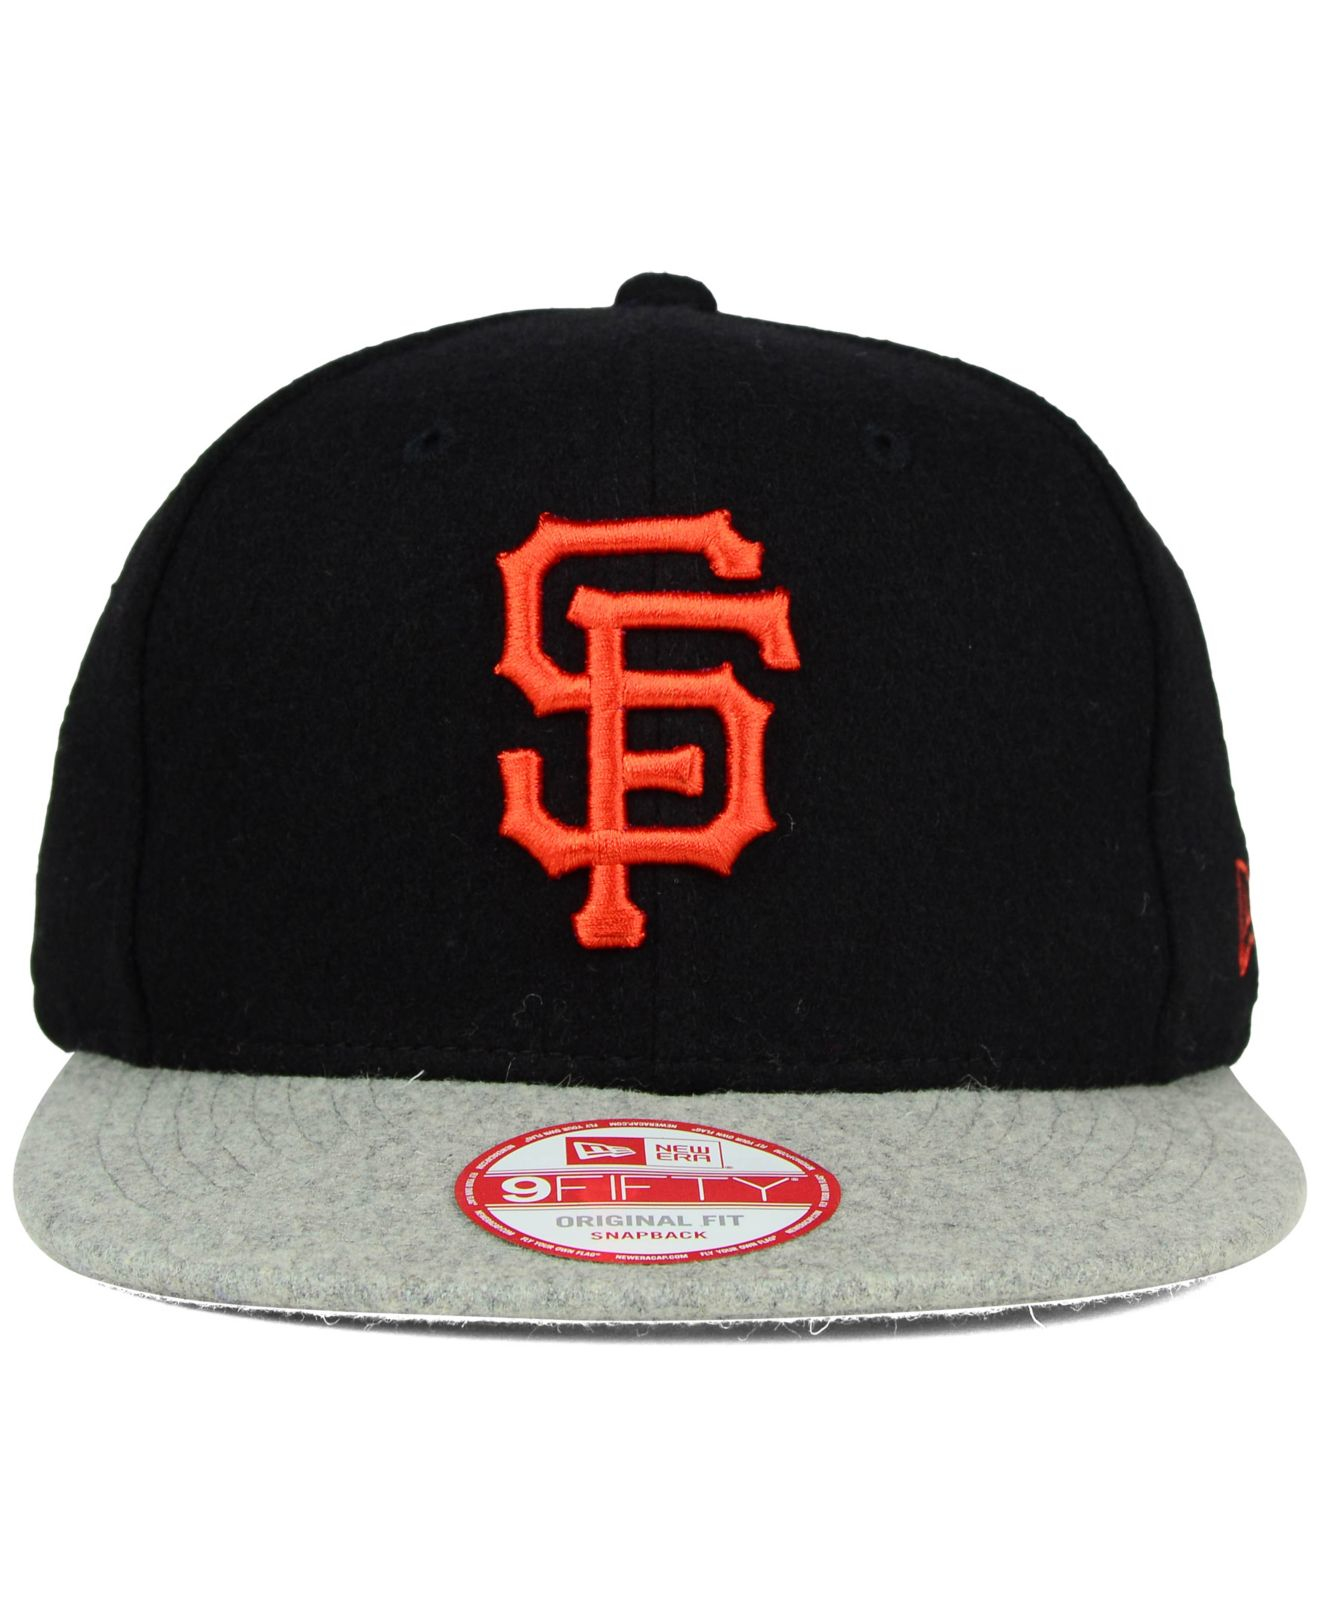 188fc126 real san francisco giants opening day hats mens ae7cf 2d01d